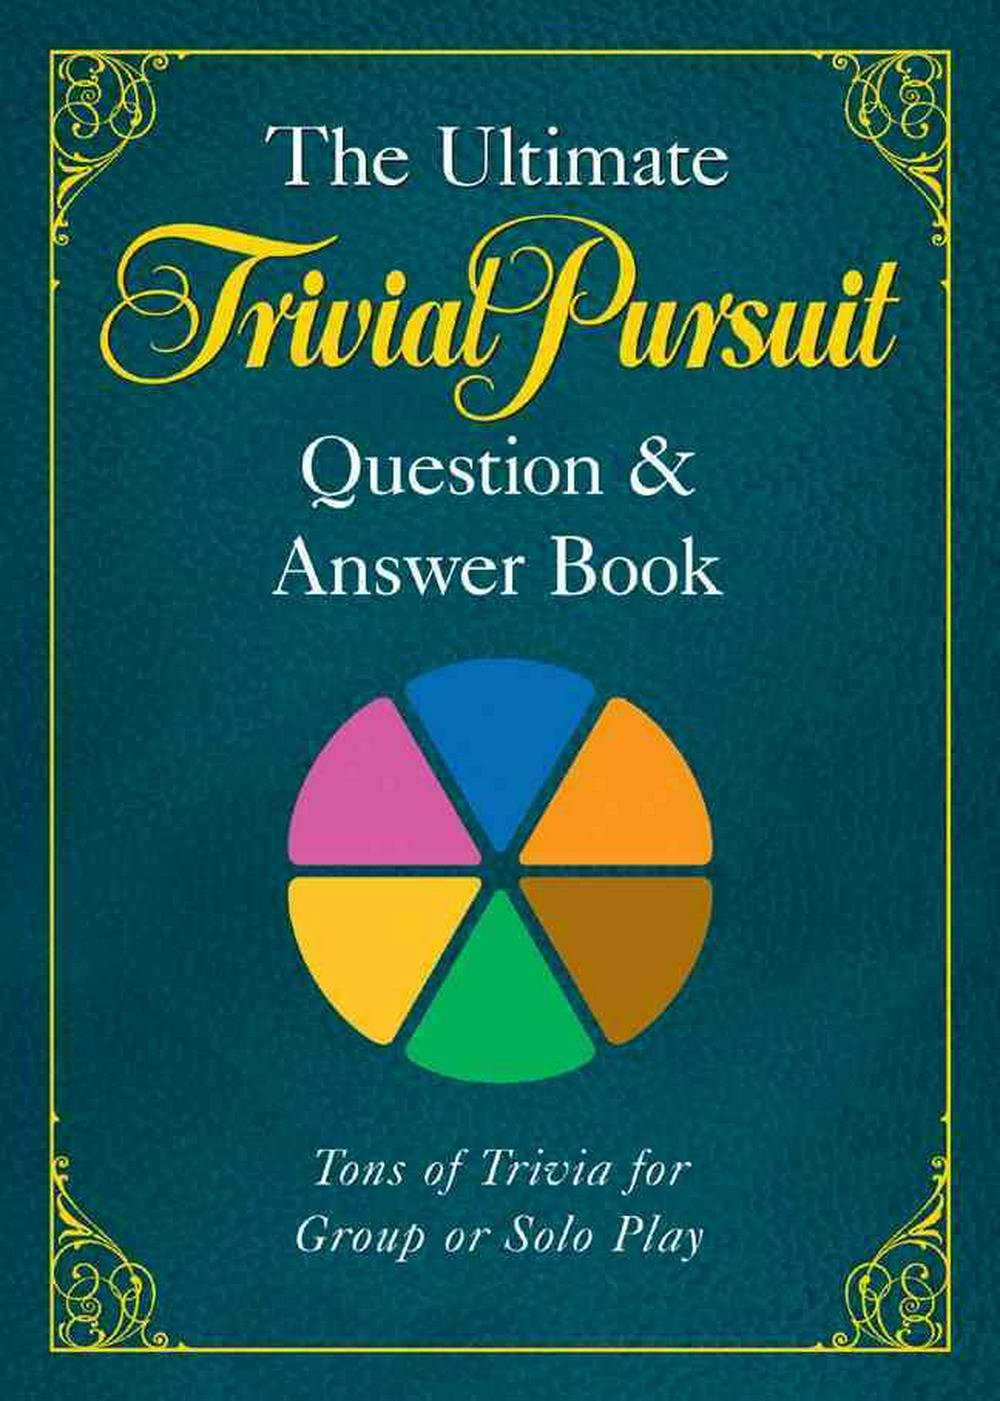 The Ultimate Trivial Pursuit Question & Answer Book by Puzzle Wright Press, ISBN: 9781402770654